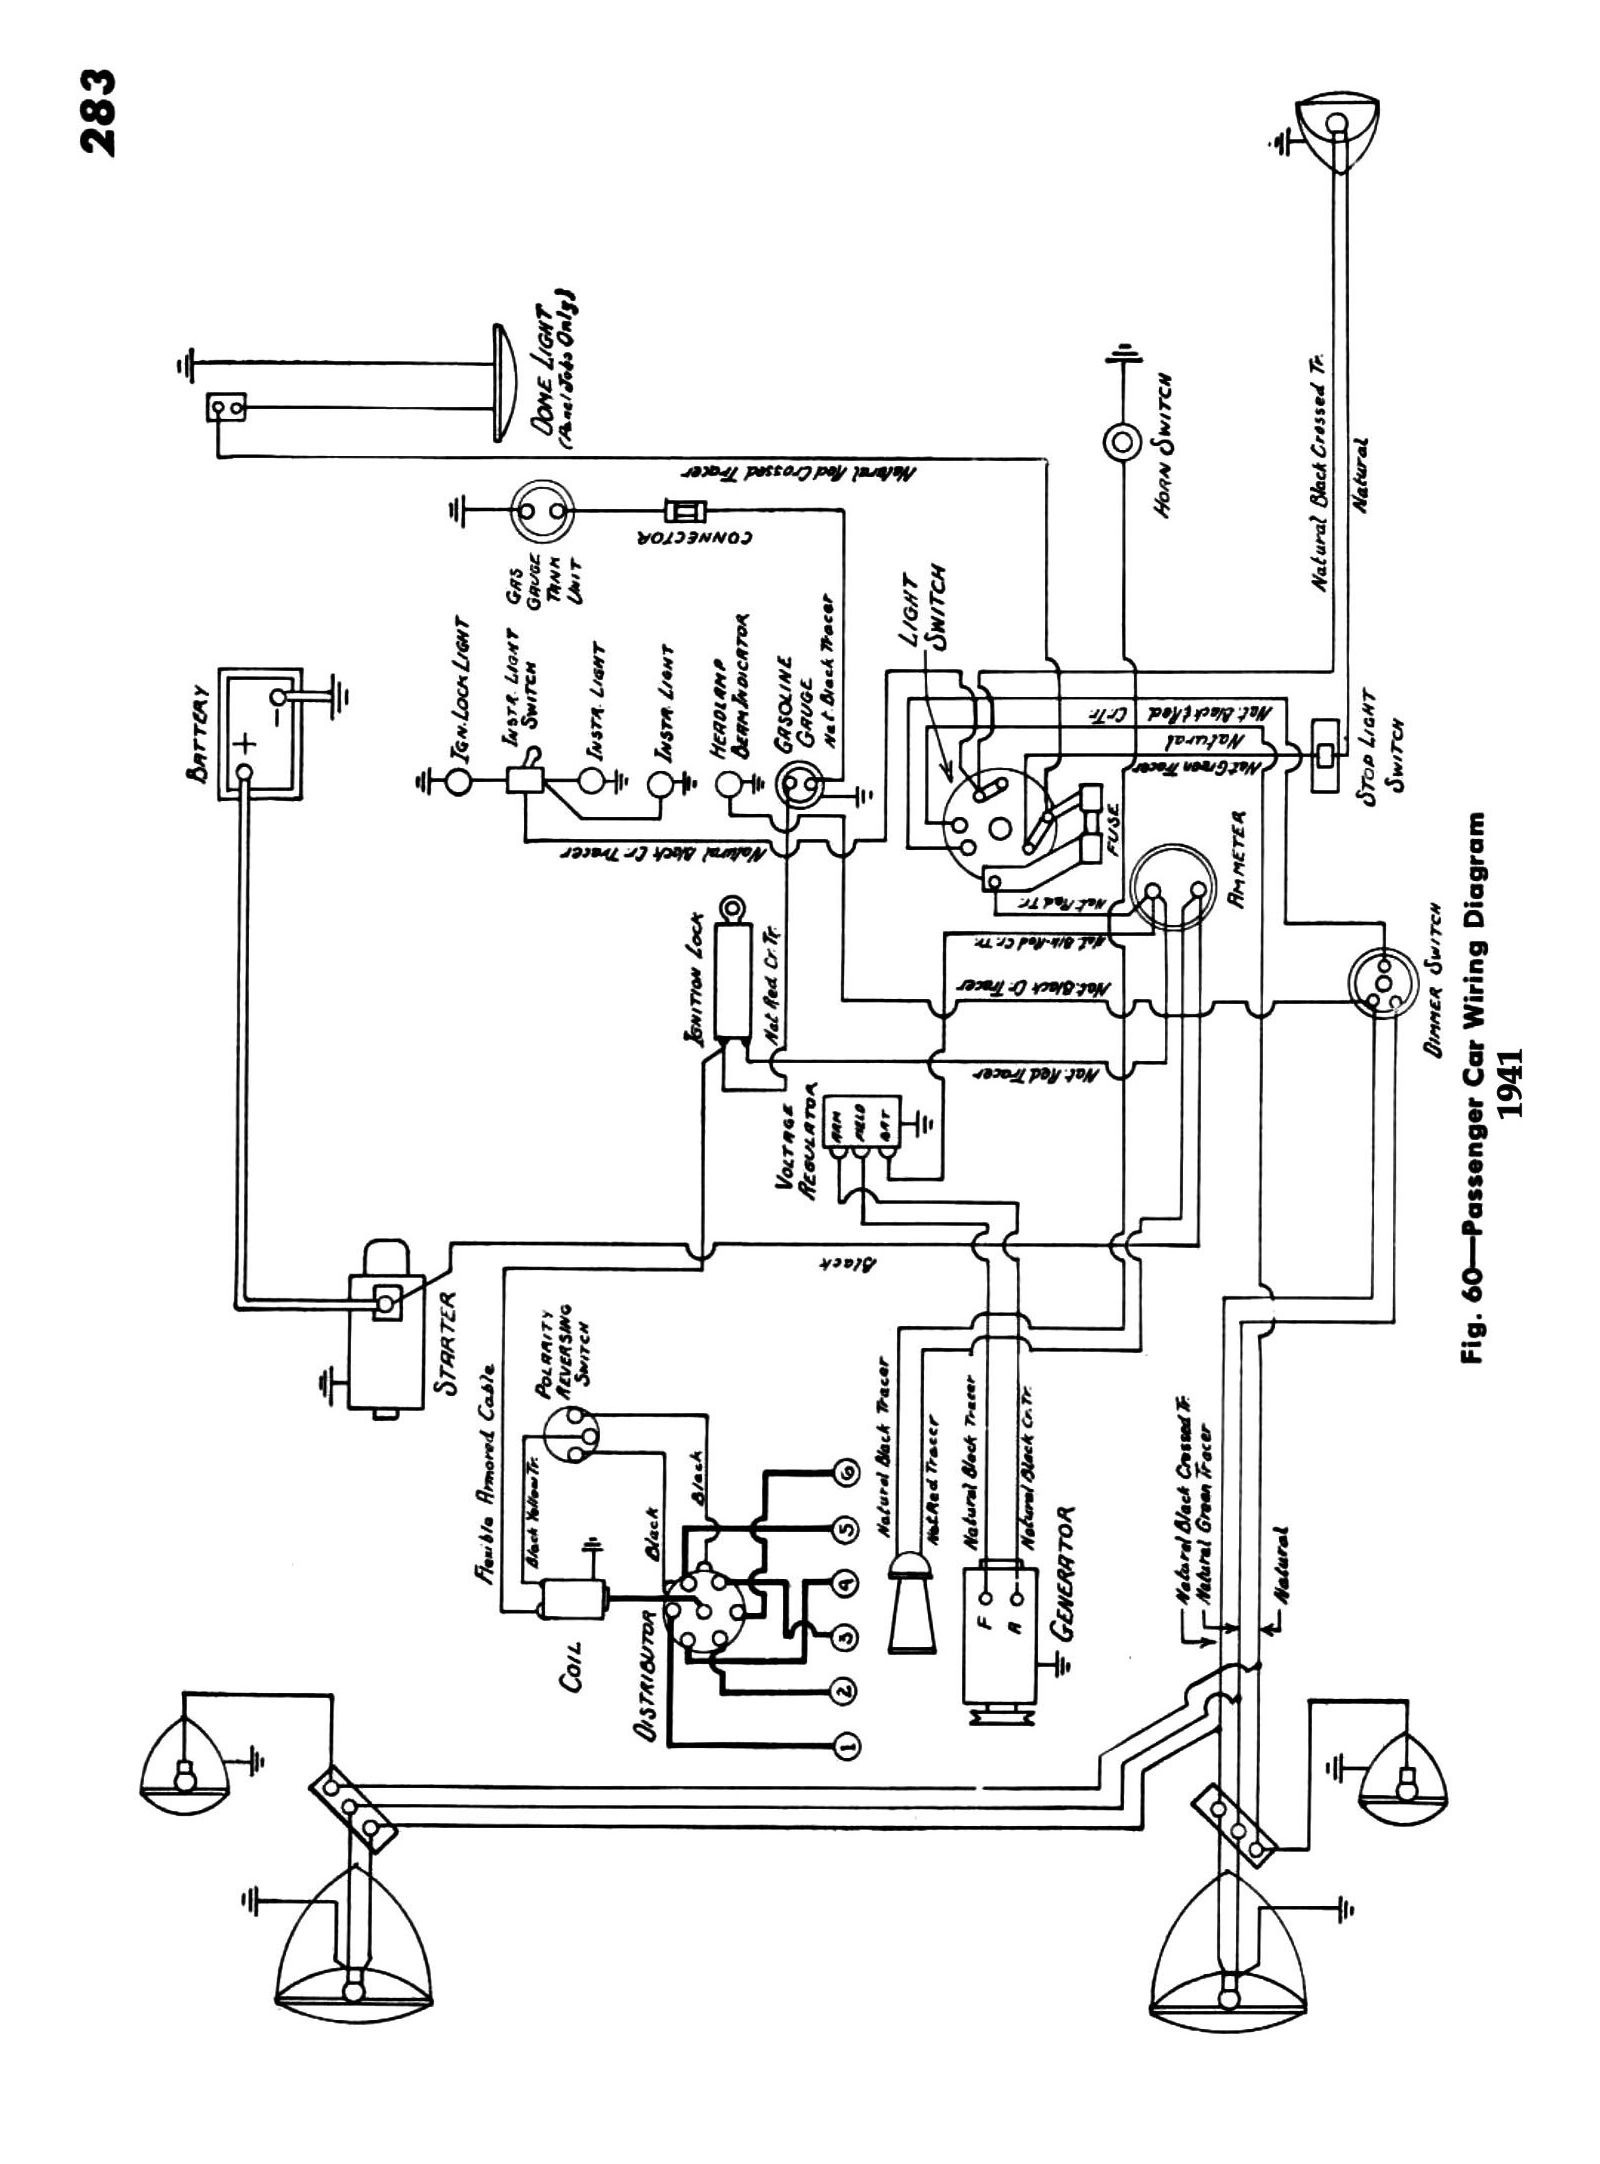 Wiring Harness Of Maine : Toyota hiace wiring diagram pdf and